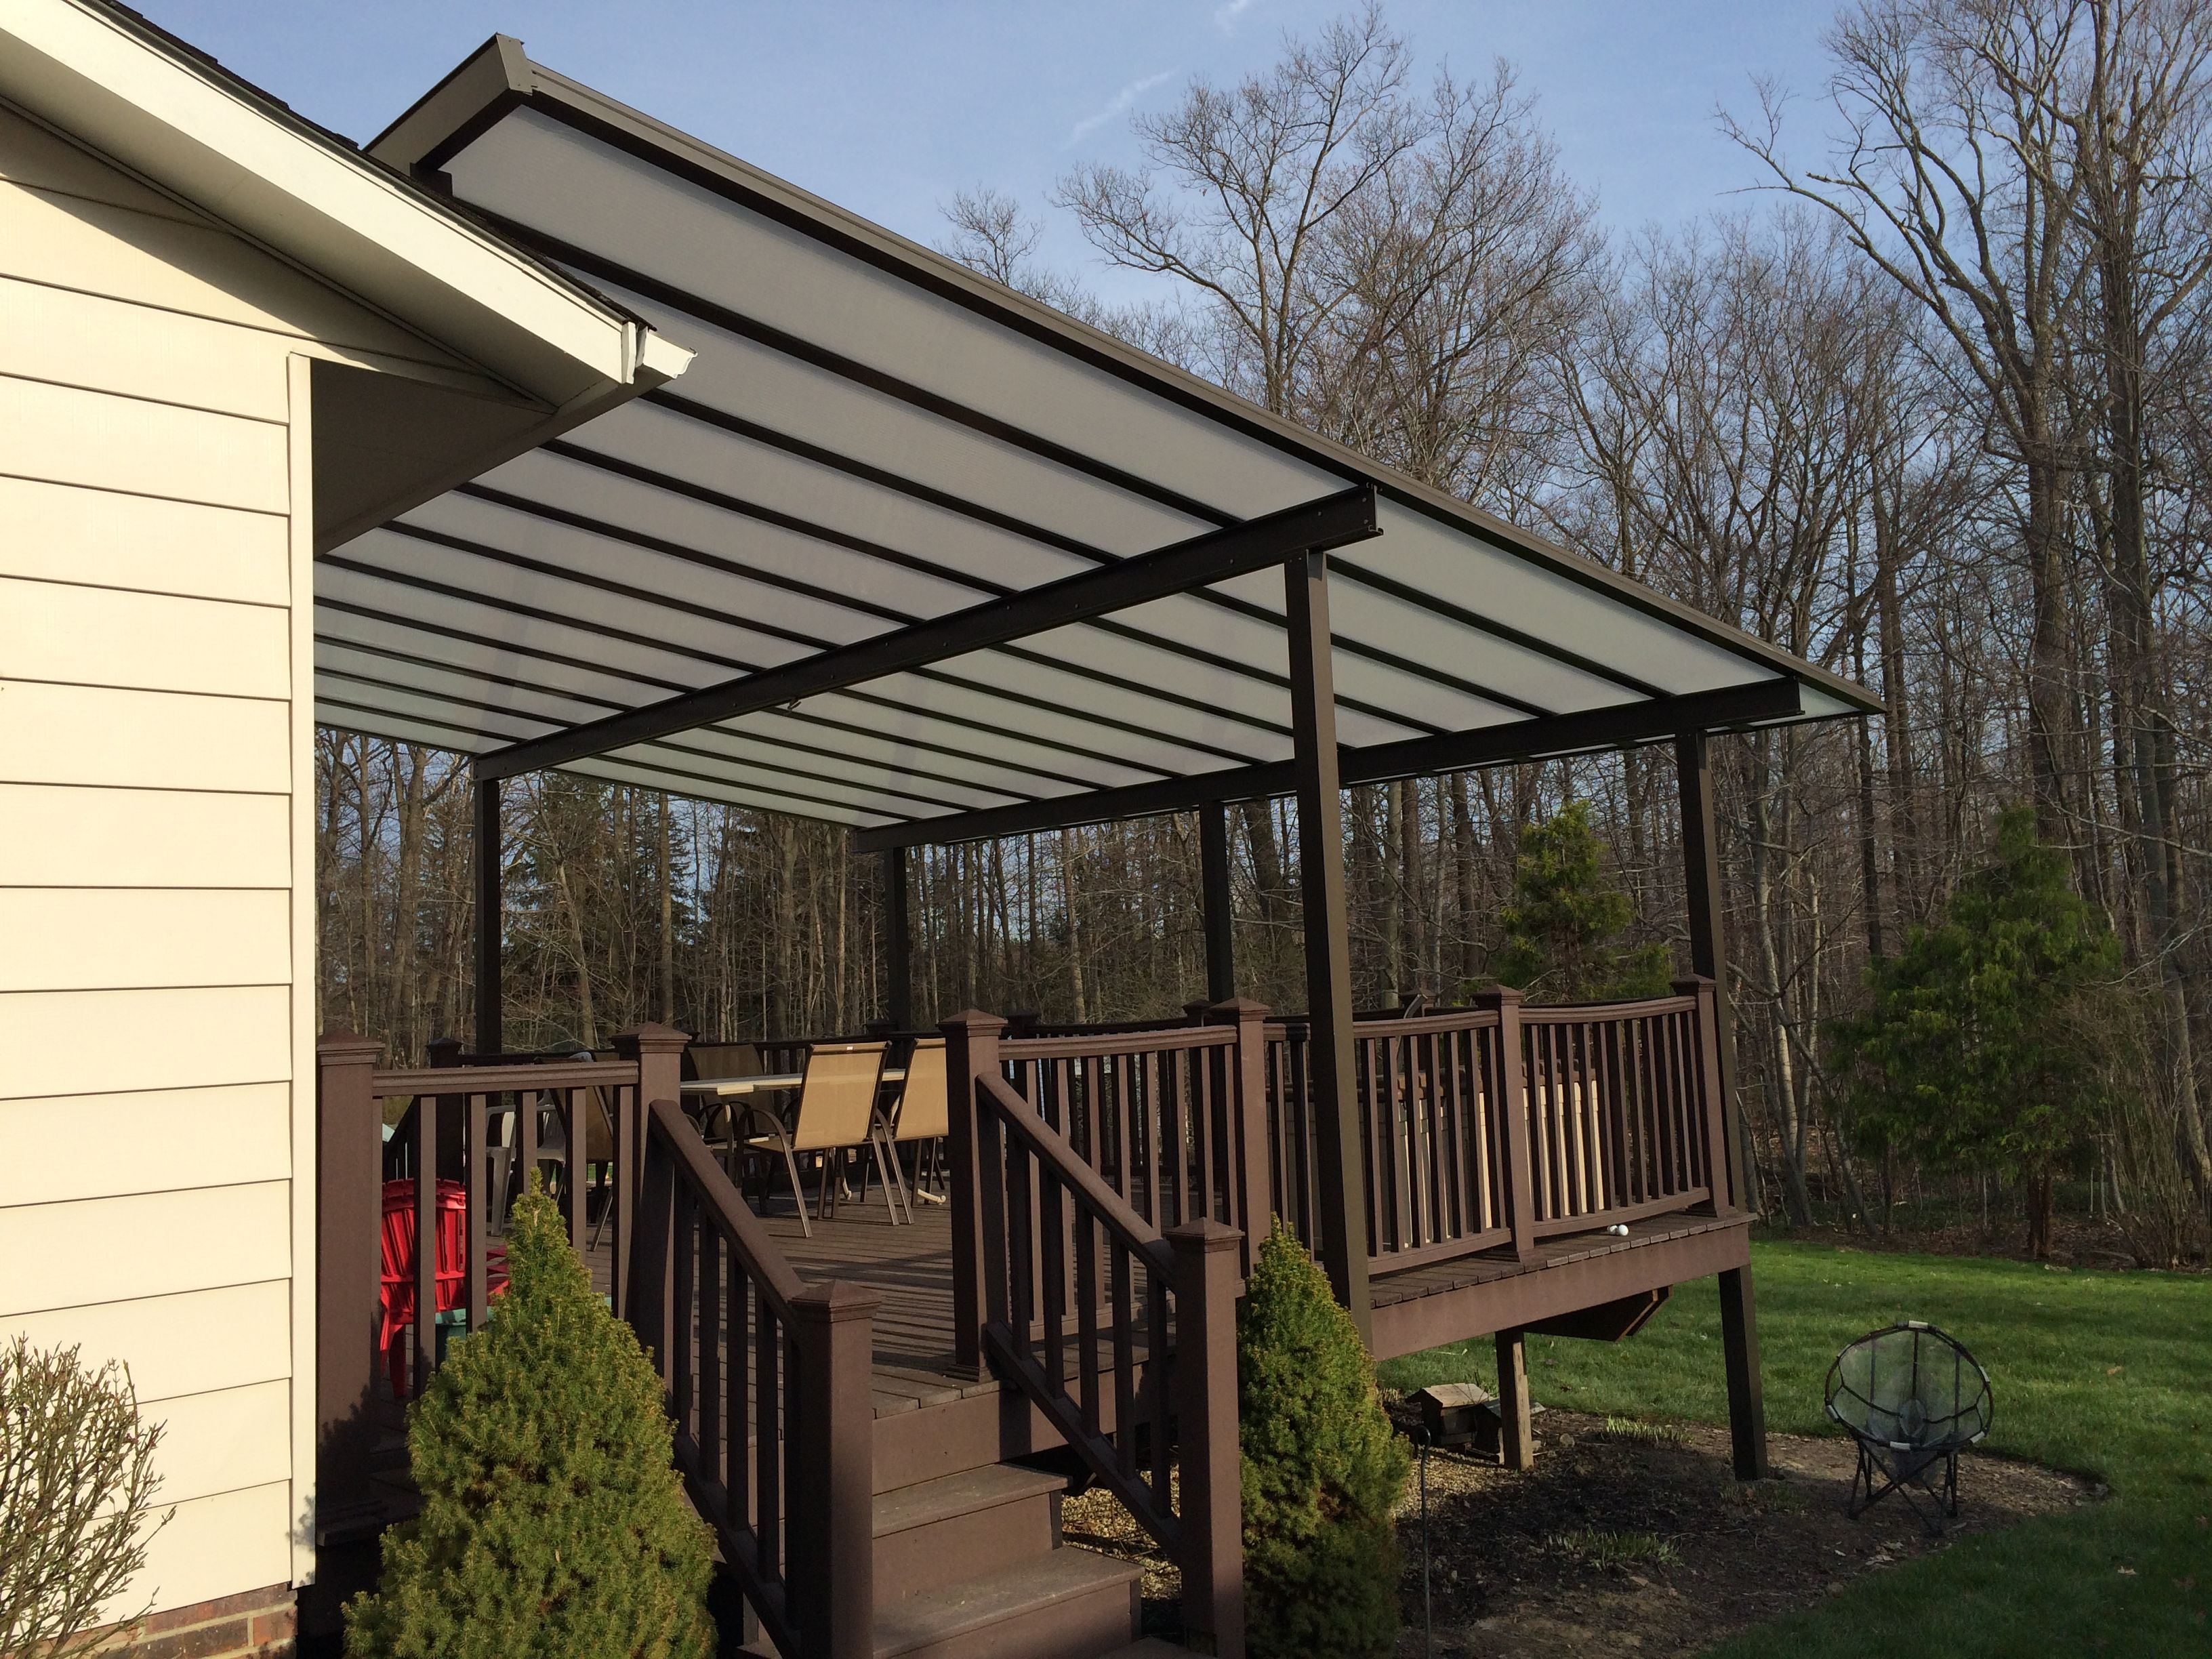 Bright Covers Are Permanent Patio Covers That Add Style And Protection To You Home Enjoy The Outdoors Without The Fear O Commercial Canopy Covered Patio Patio